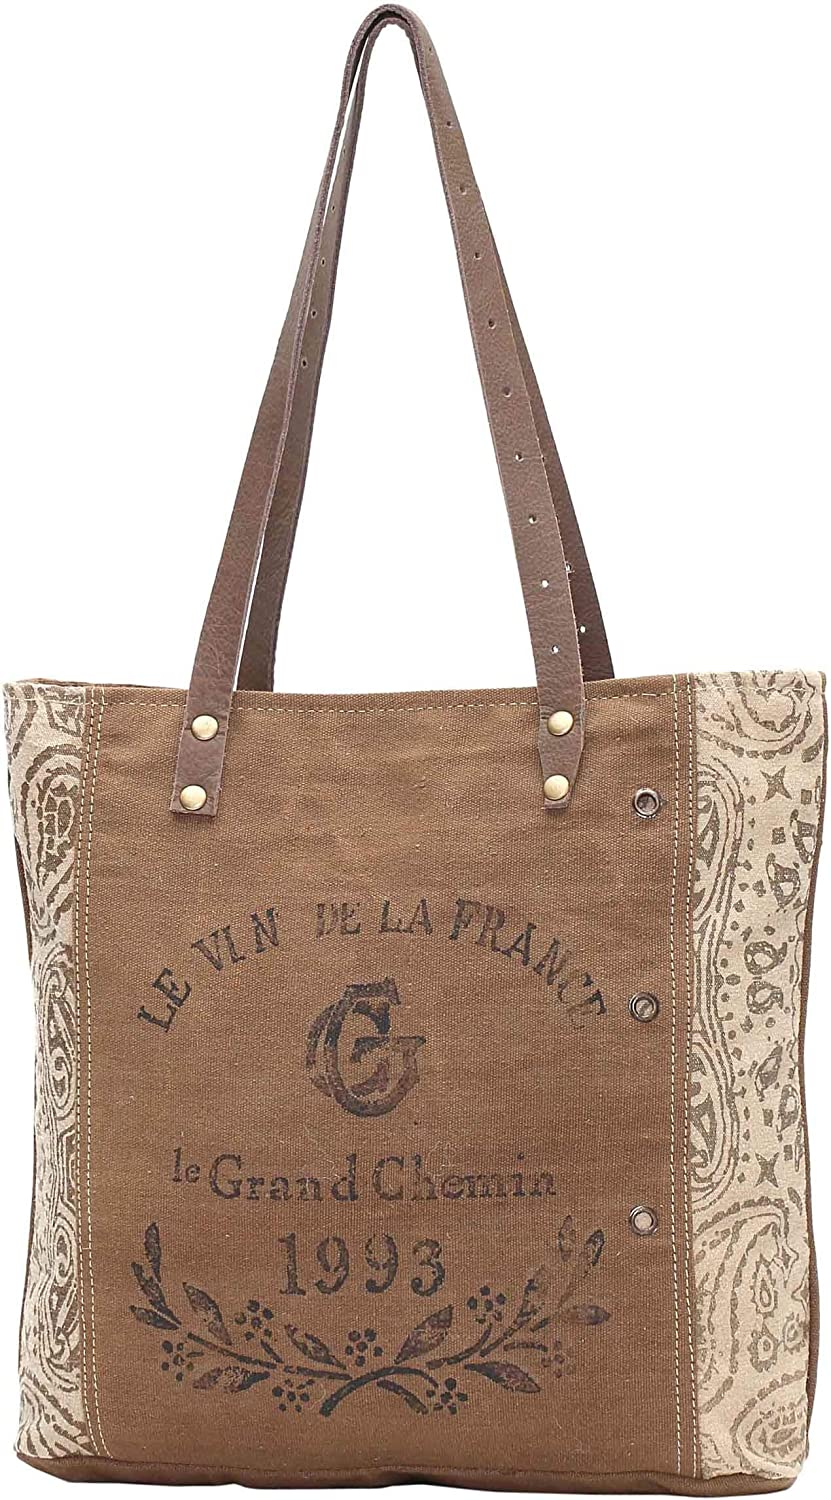 Myra Bags 1933 Upcycled Canvas Tote Bag M0936